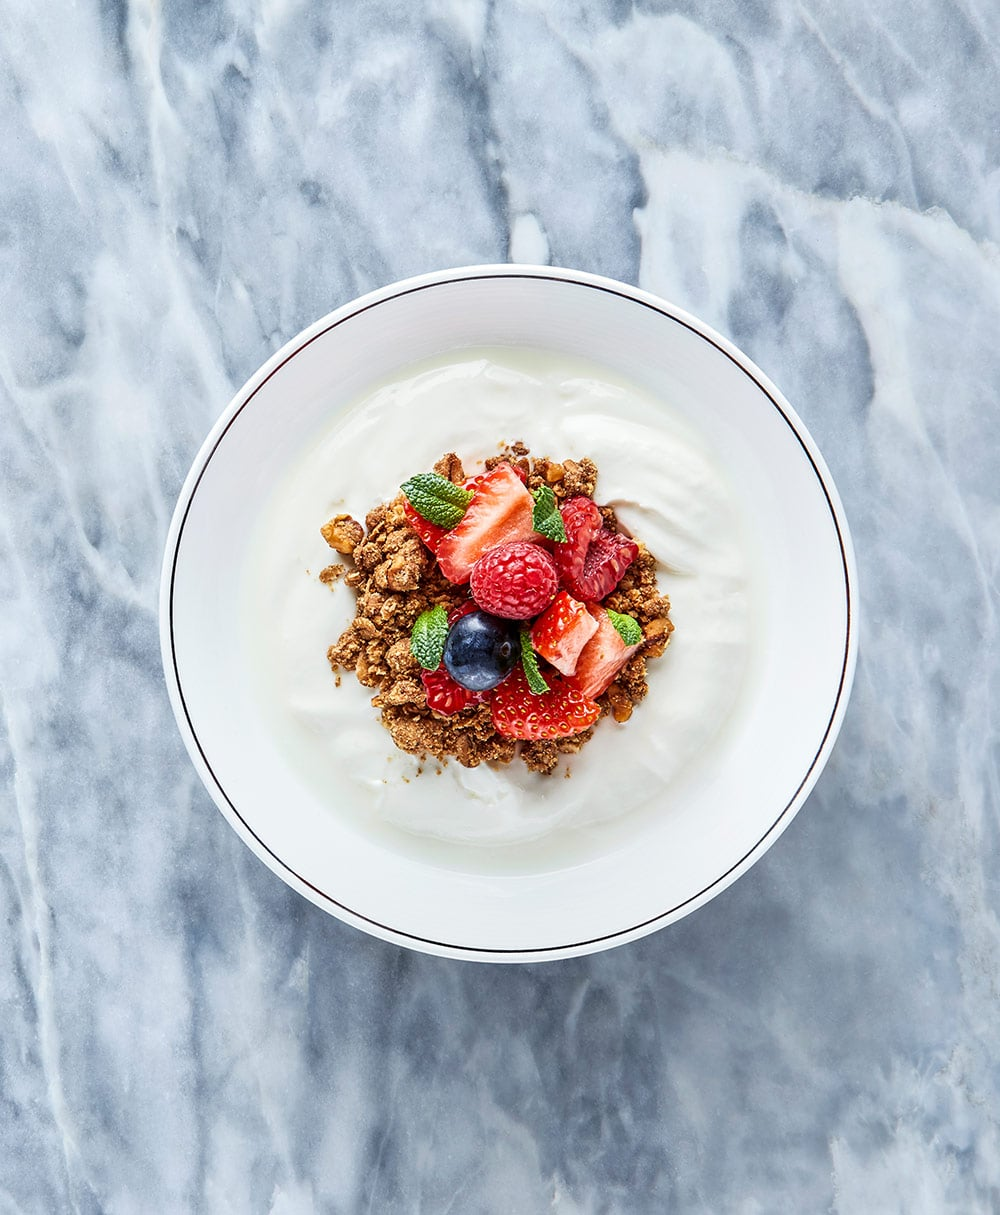 picture of a plate with yoghurt and fruits on marble